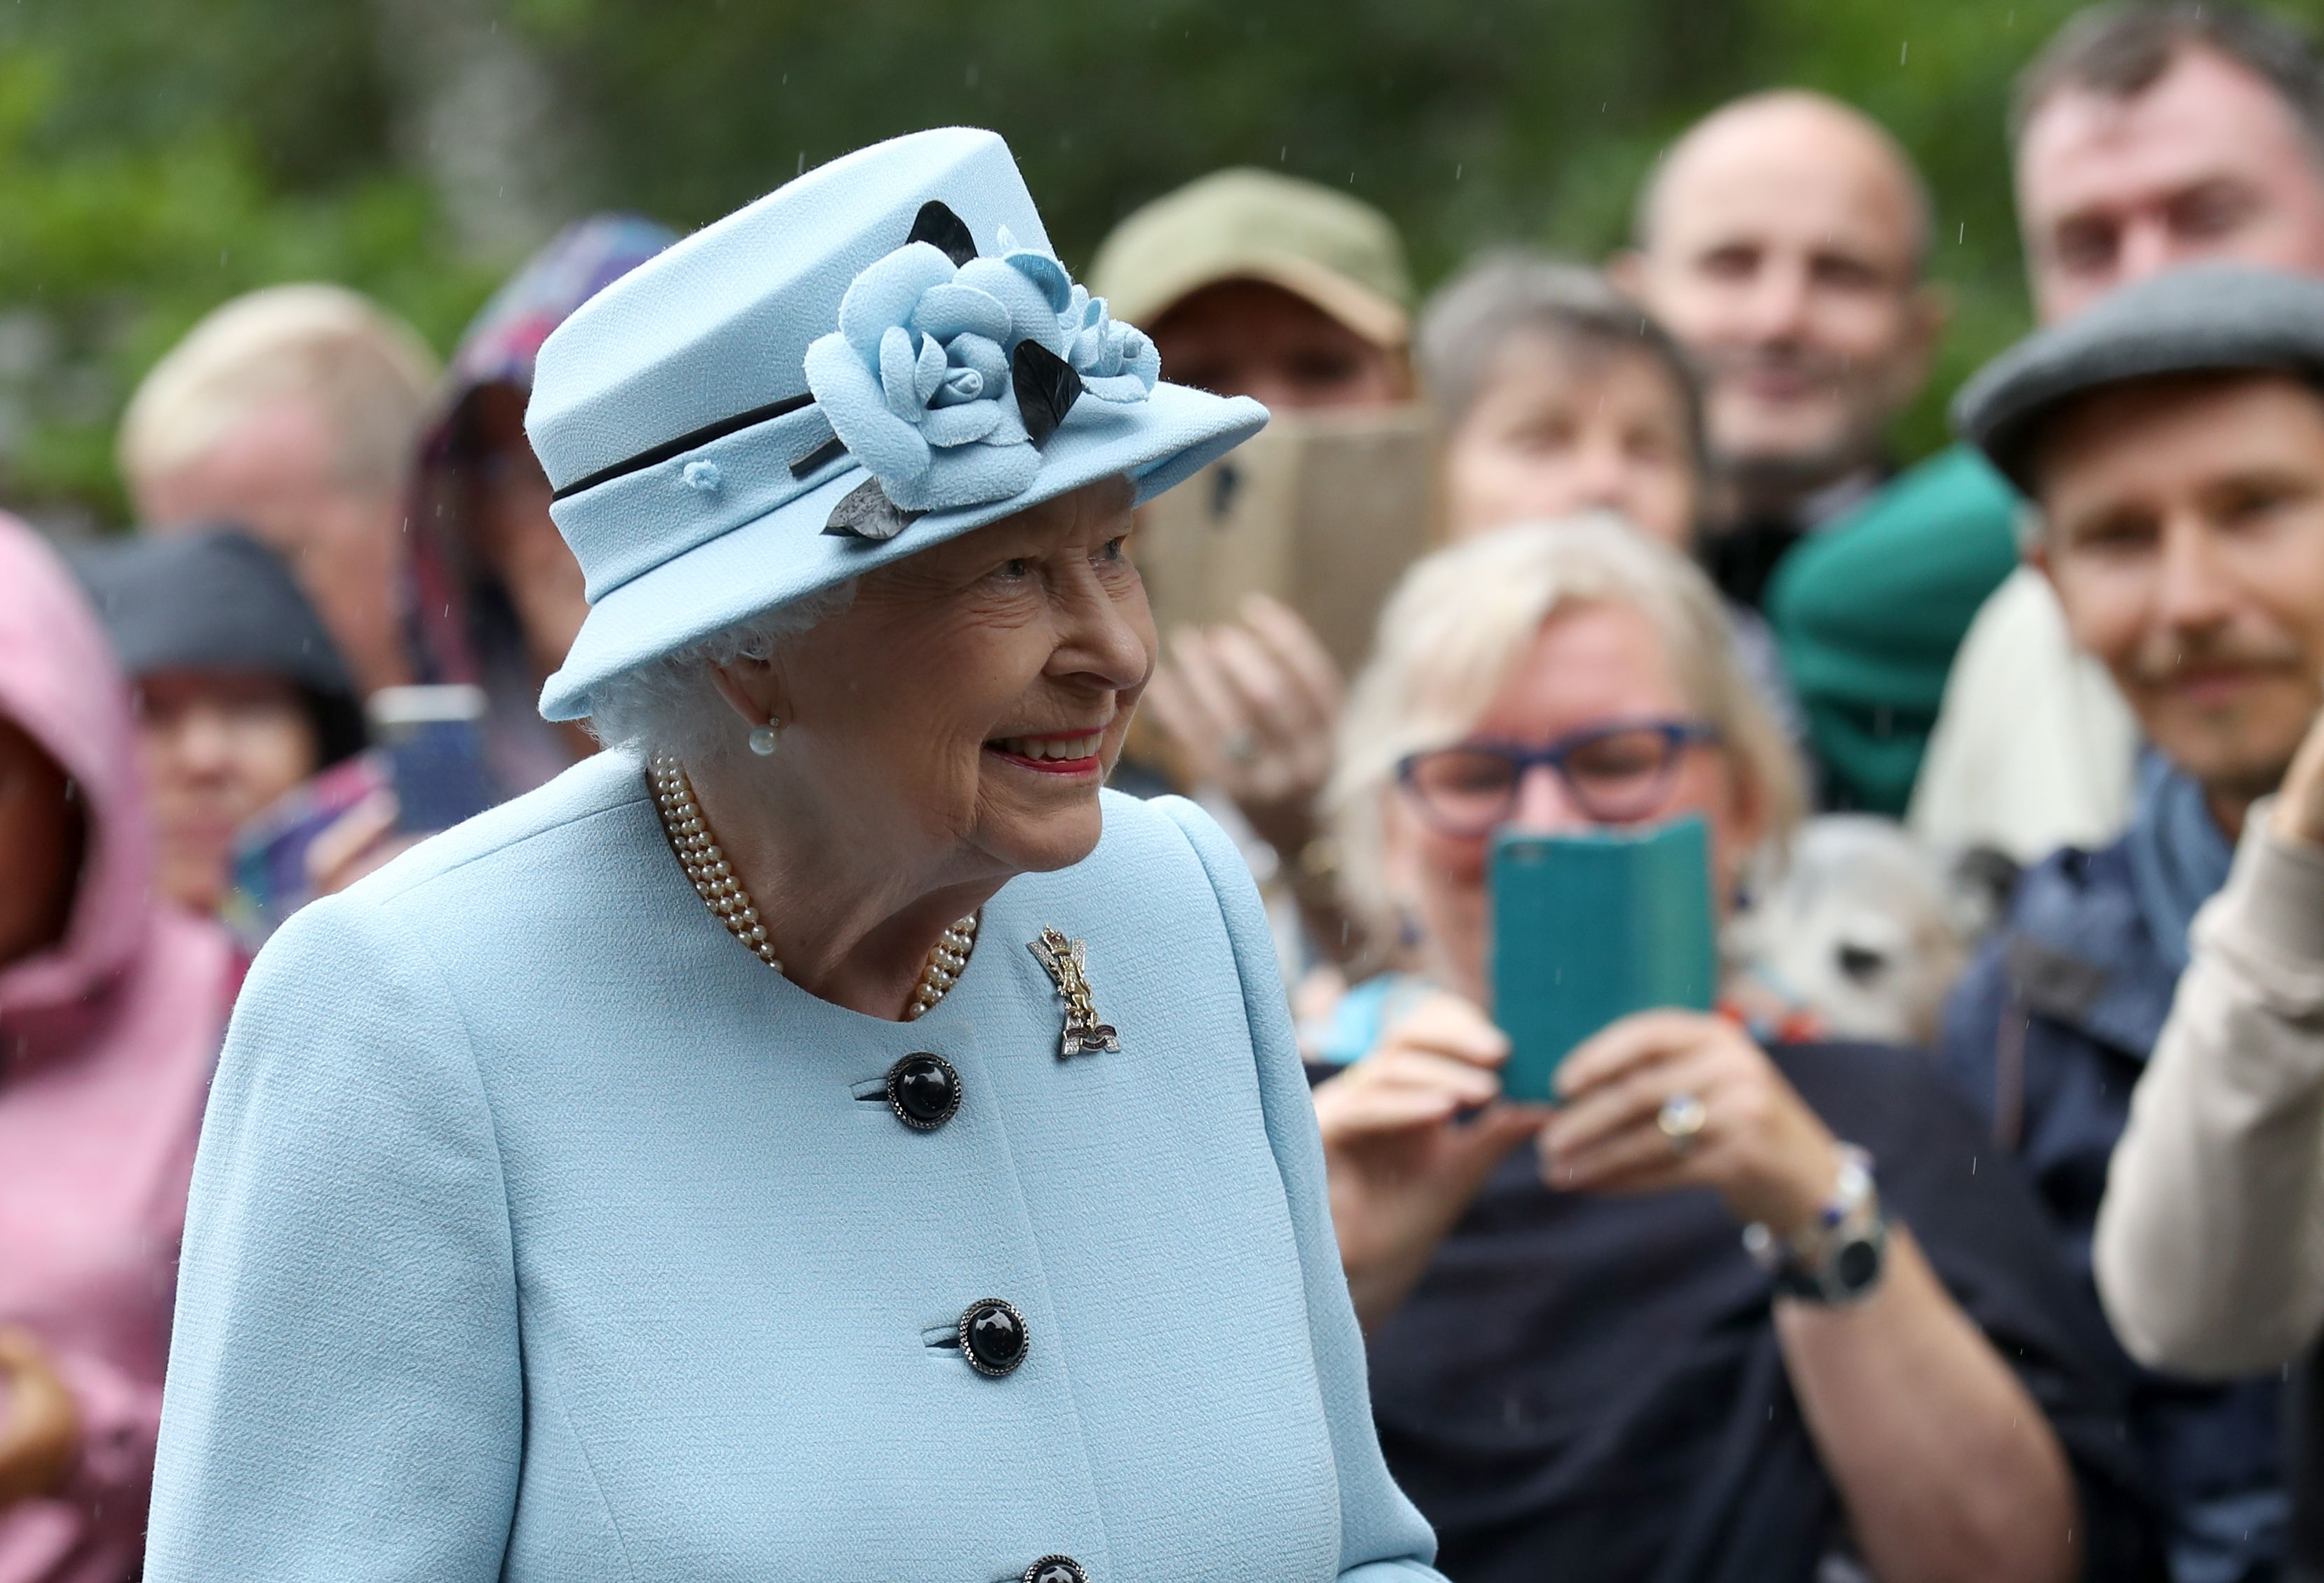 Queen Elizabeth Is the Most Favored Member of the Royal Family According to New Poll